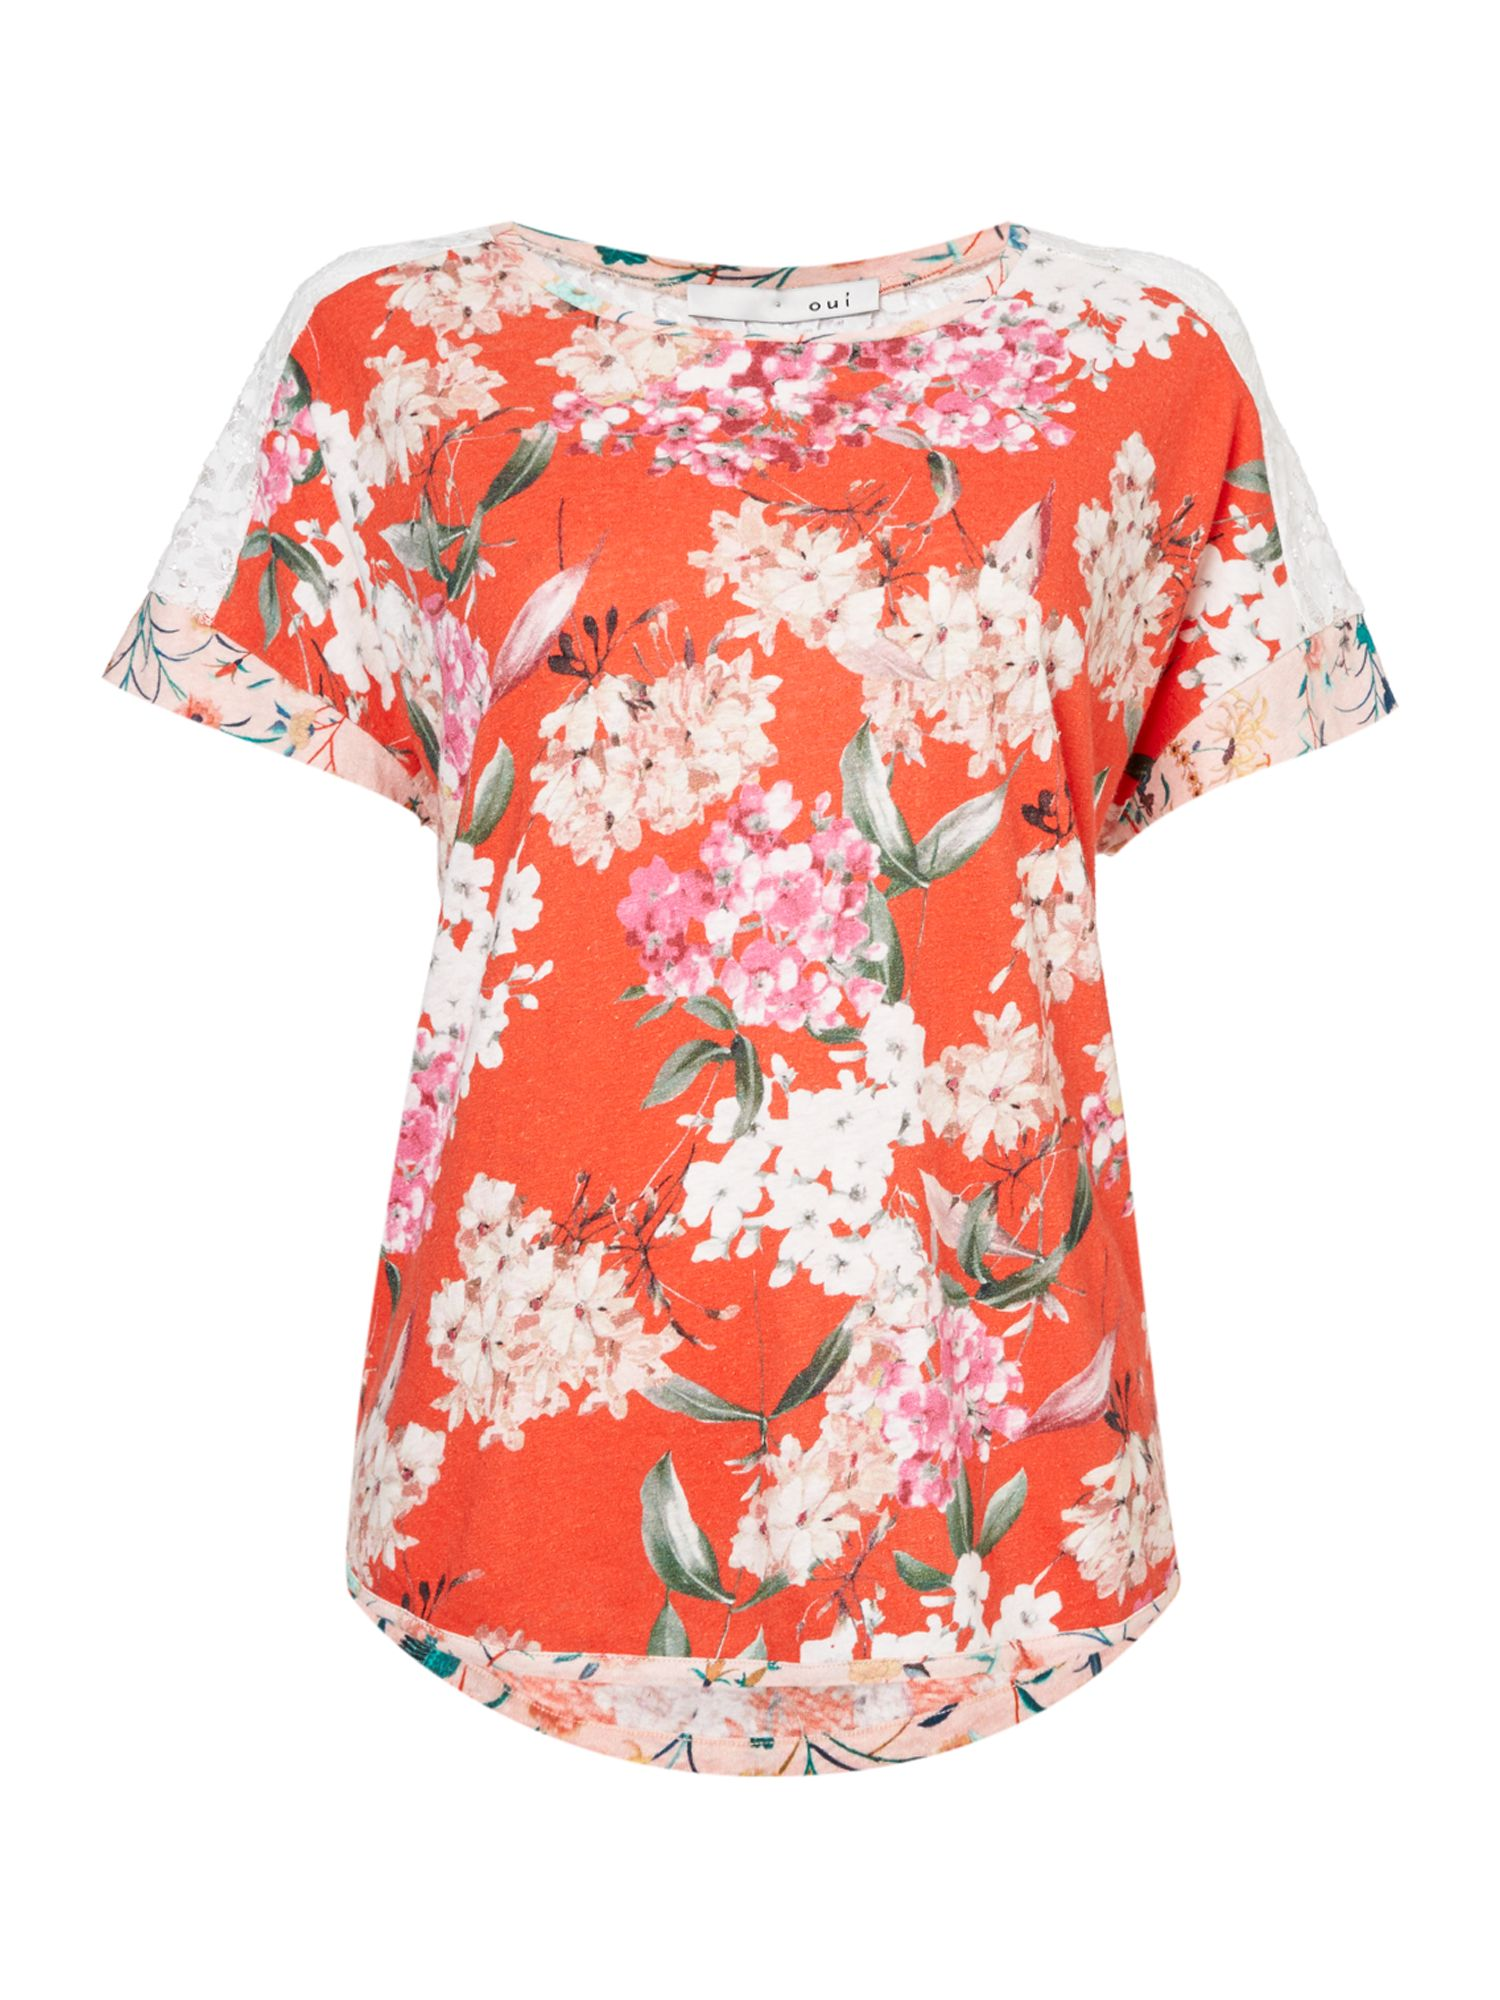 Oui Floral and lace t-shirt, Red